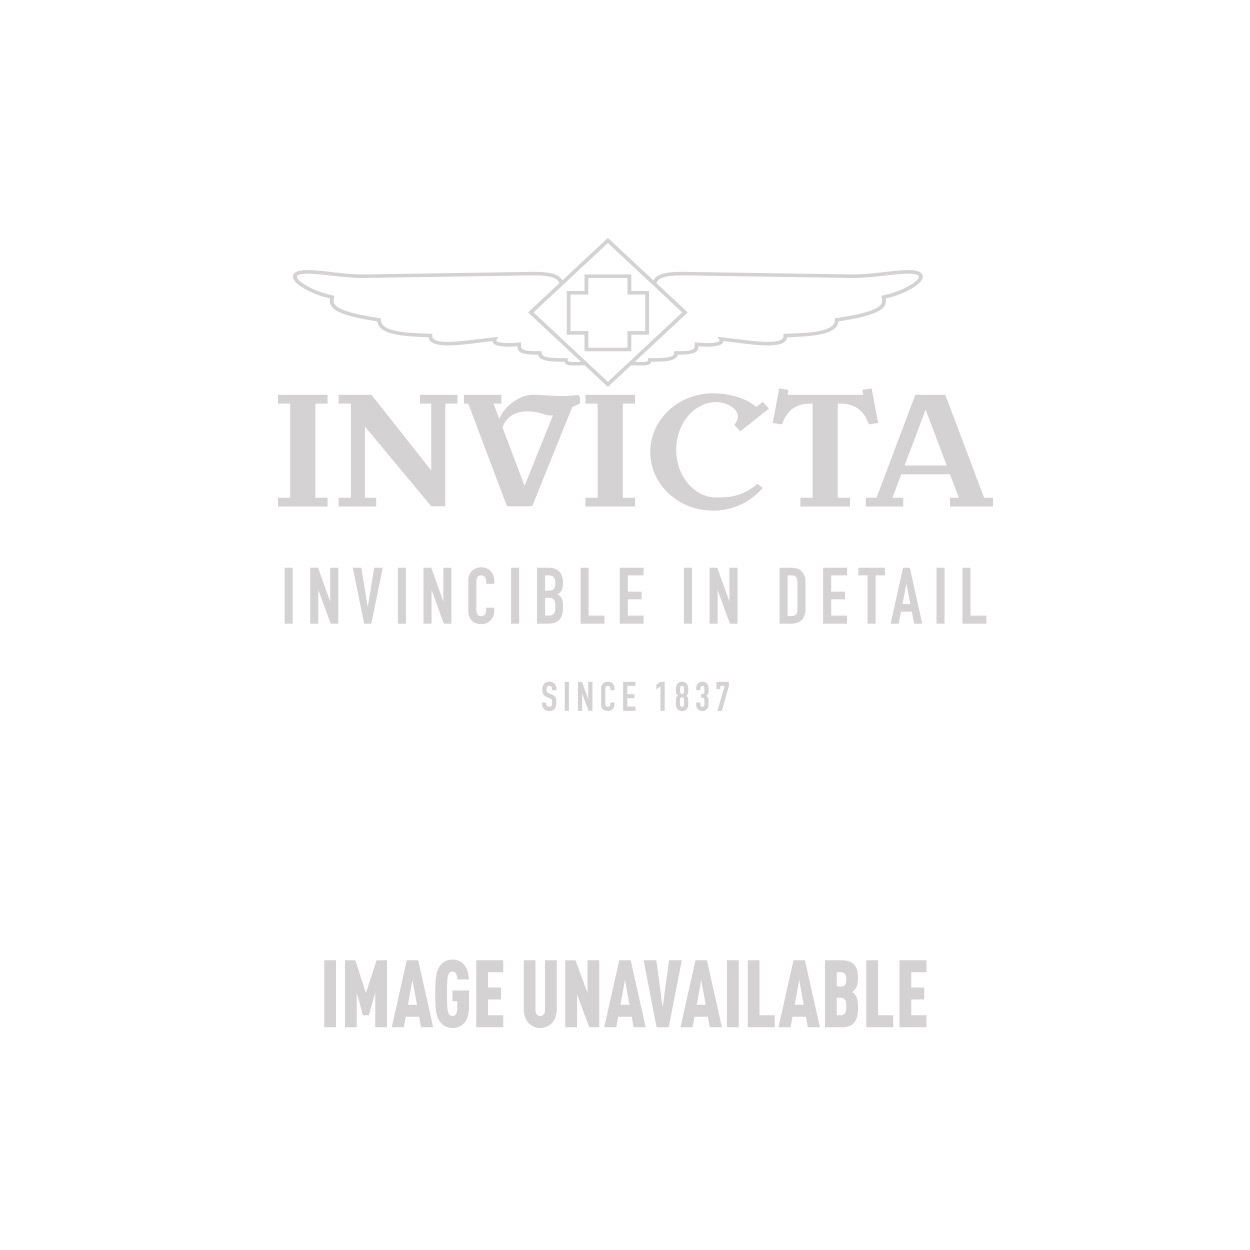 Invicta Corduba Swiss Movement Quartz Watch - Stainless Steel case with Silver tone Leather band - Model 90221